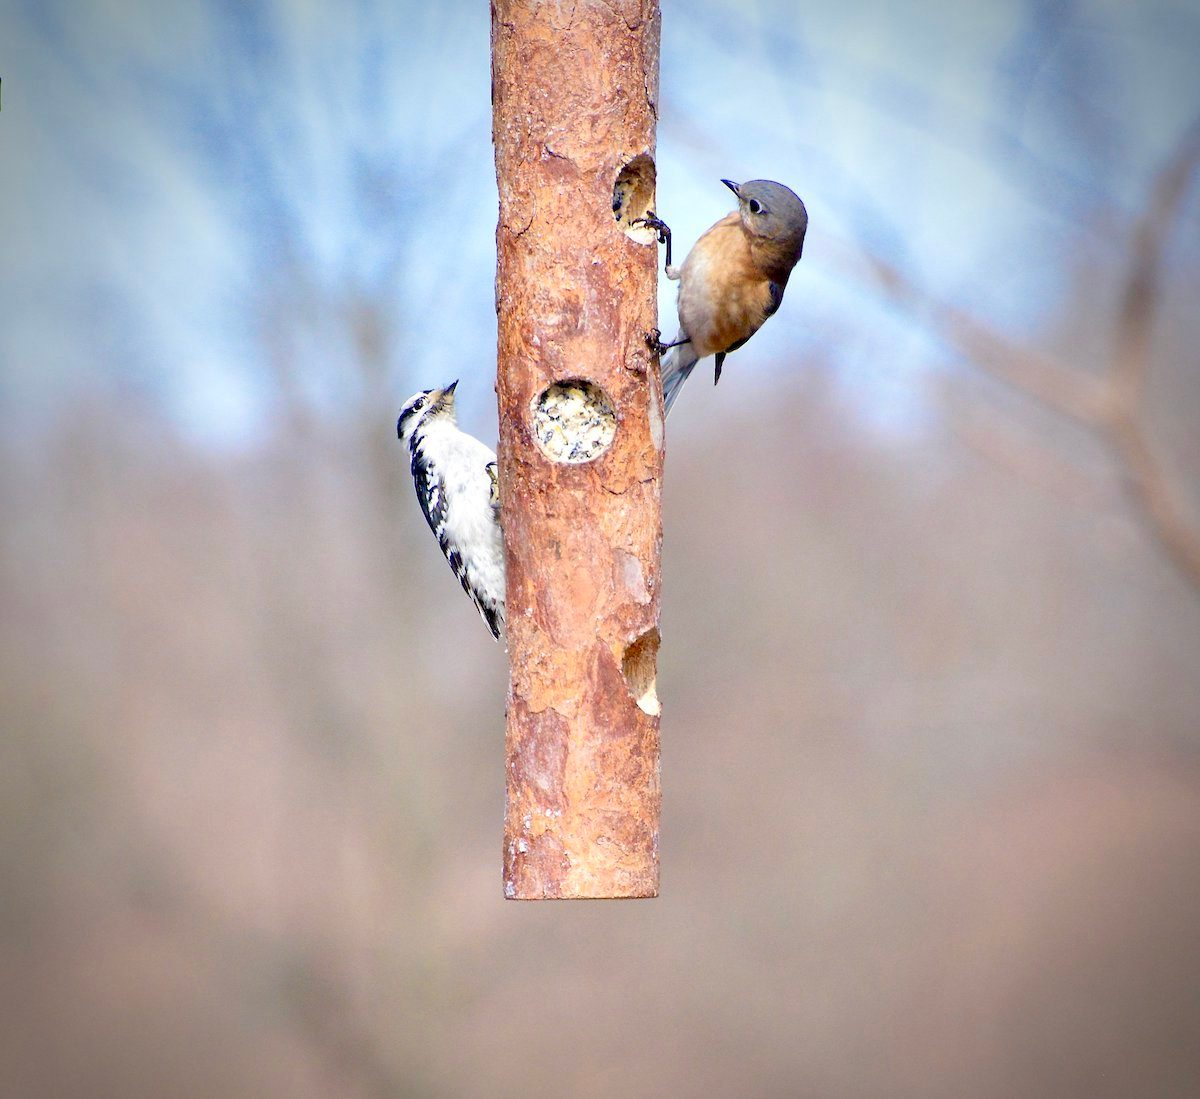 Downy woodpecker and bluebird on a log feeder